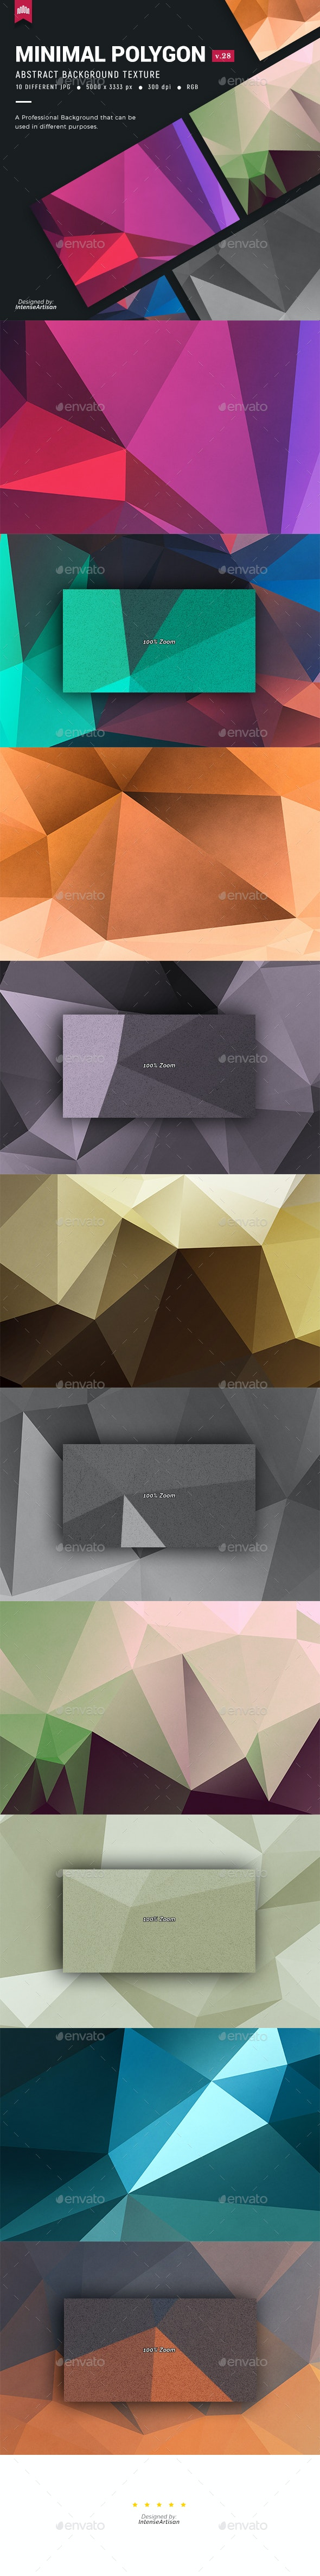 Minimal - Polygon Background V.28 - Abstract Backgrounds